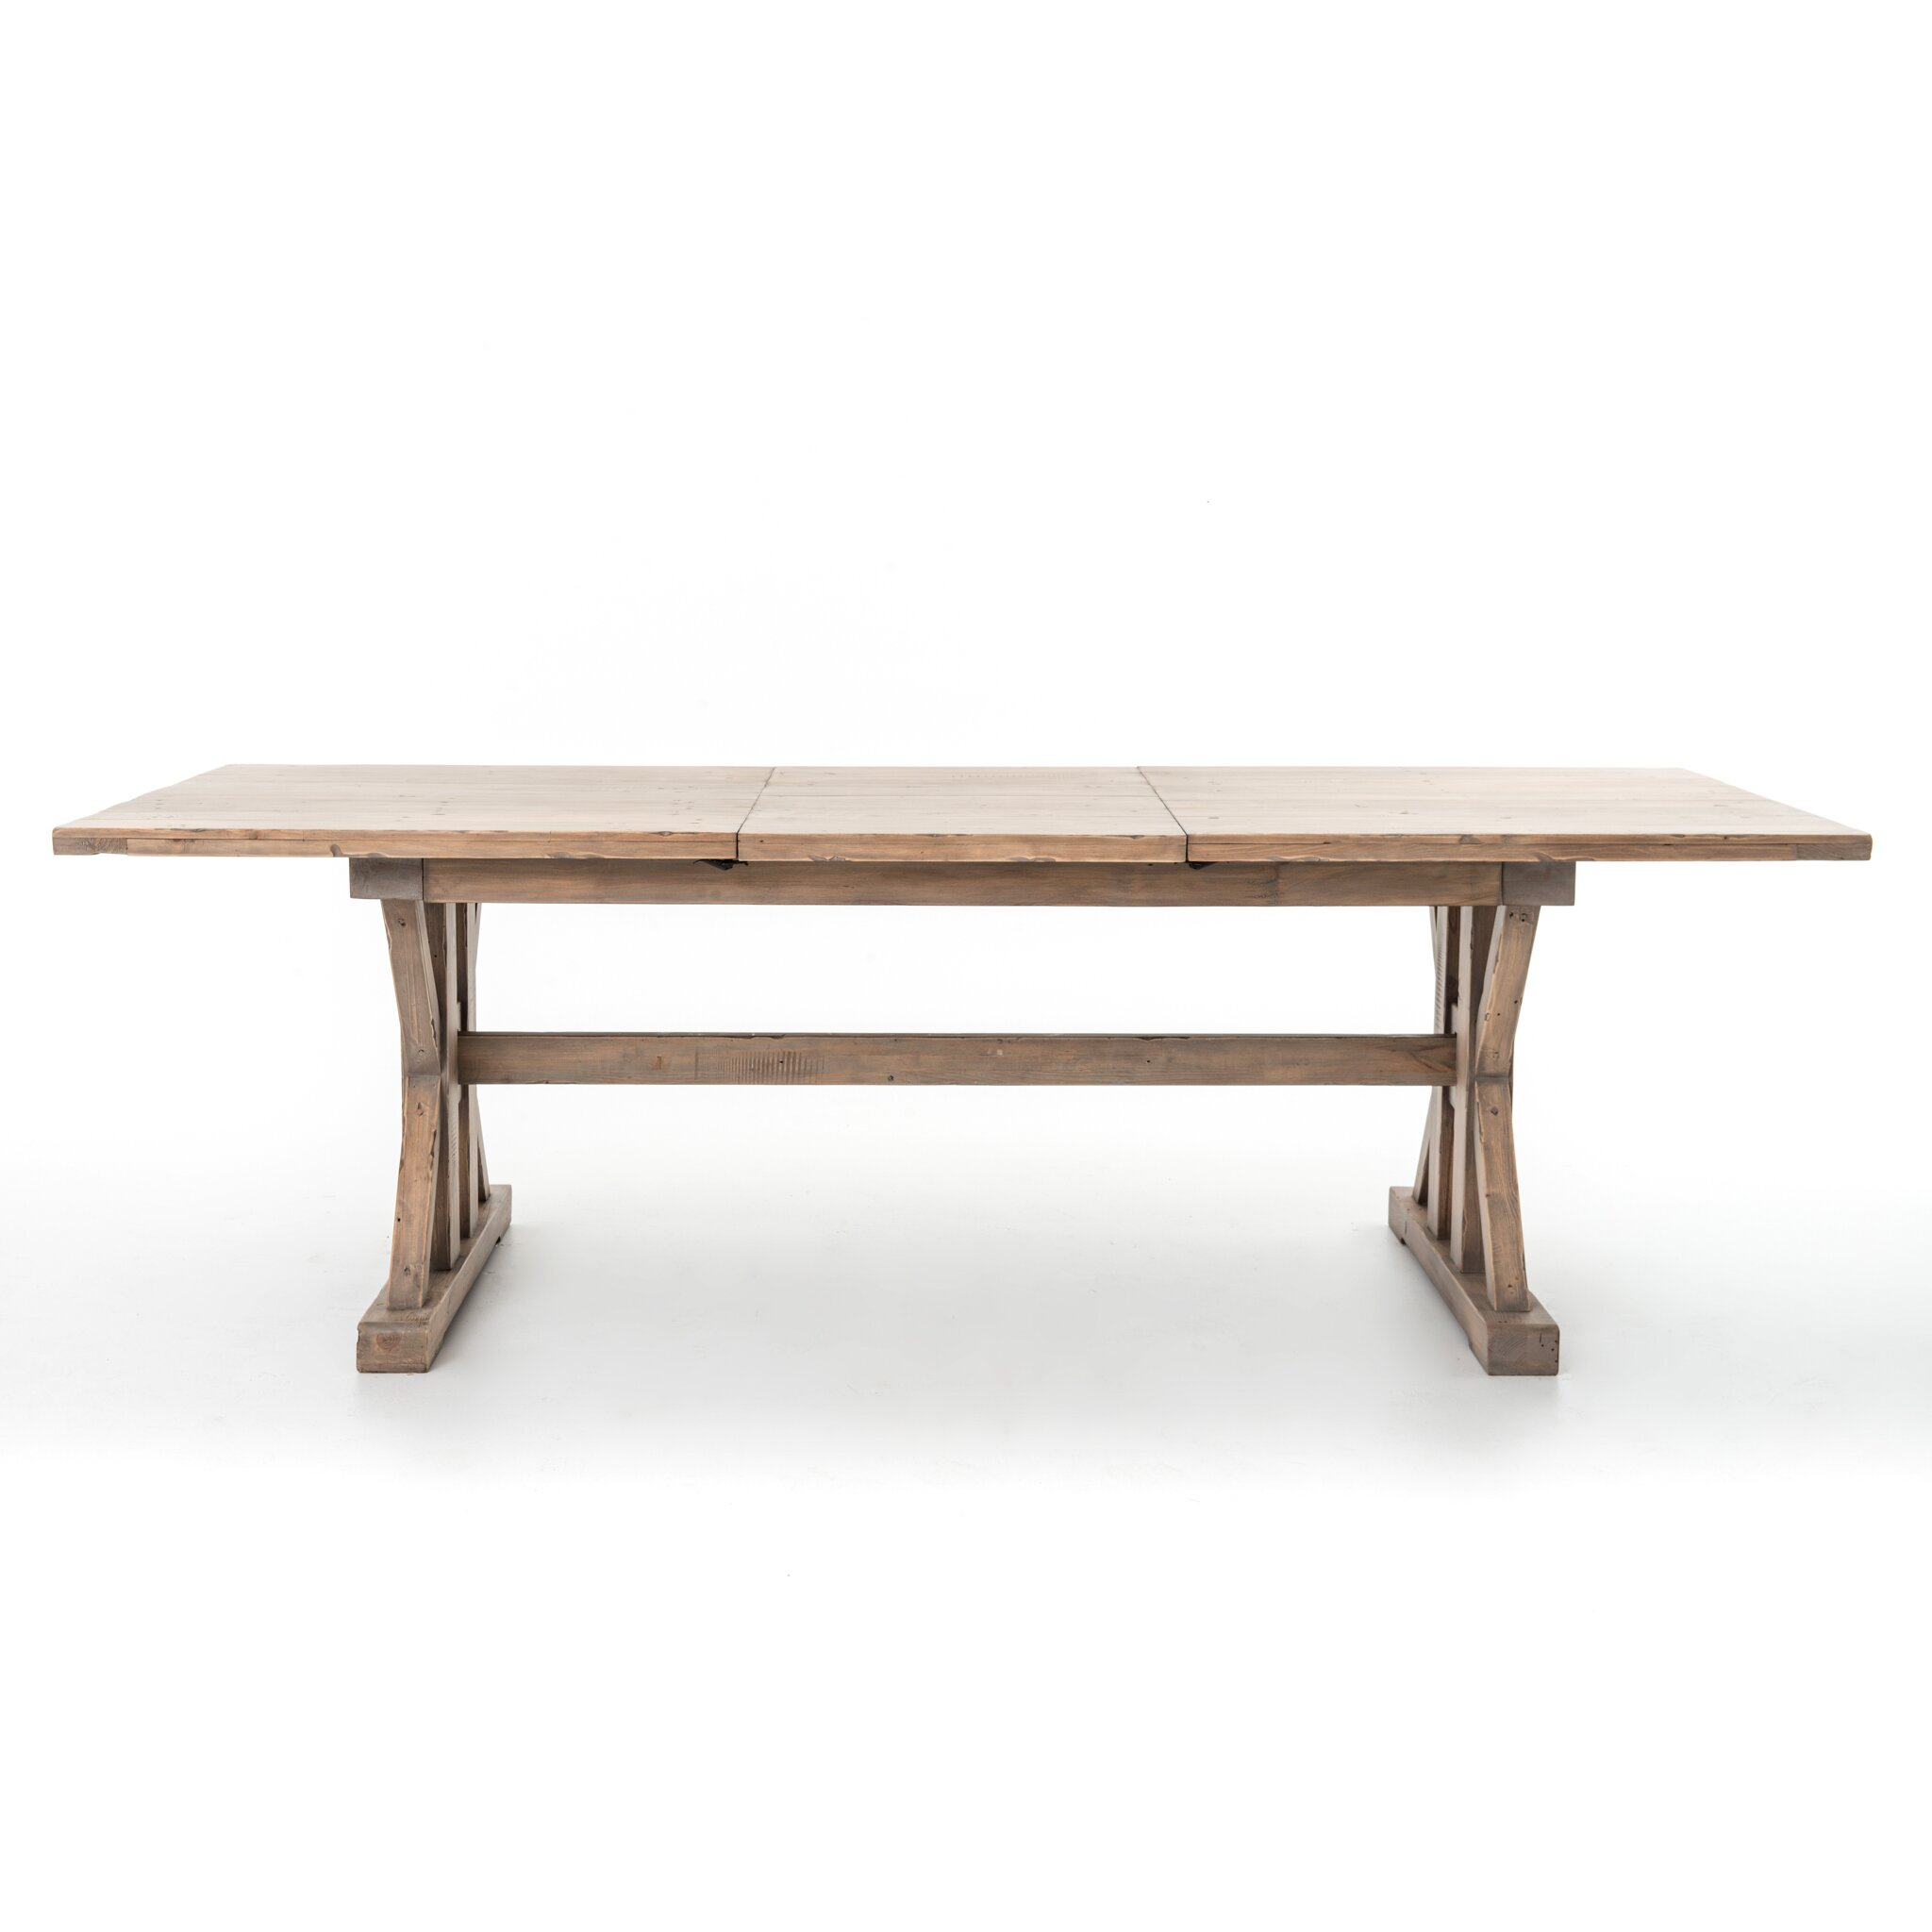 Design Tree Home Tuscan Spring Extendable Dining Table  : Design Tree Home Tuscan Spring Extendable Dining Table from www.wayfair.com size 2048 x 2048 jpeg 182kB